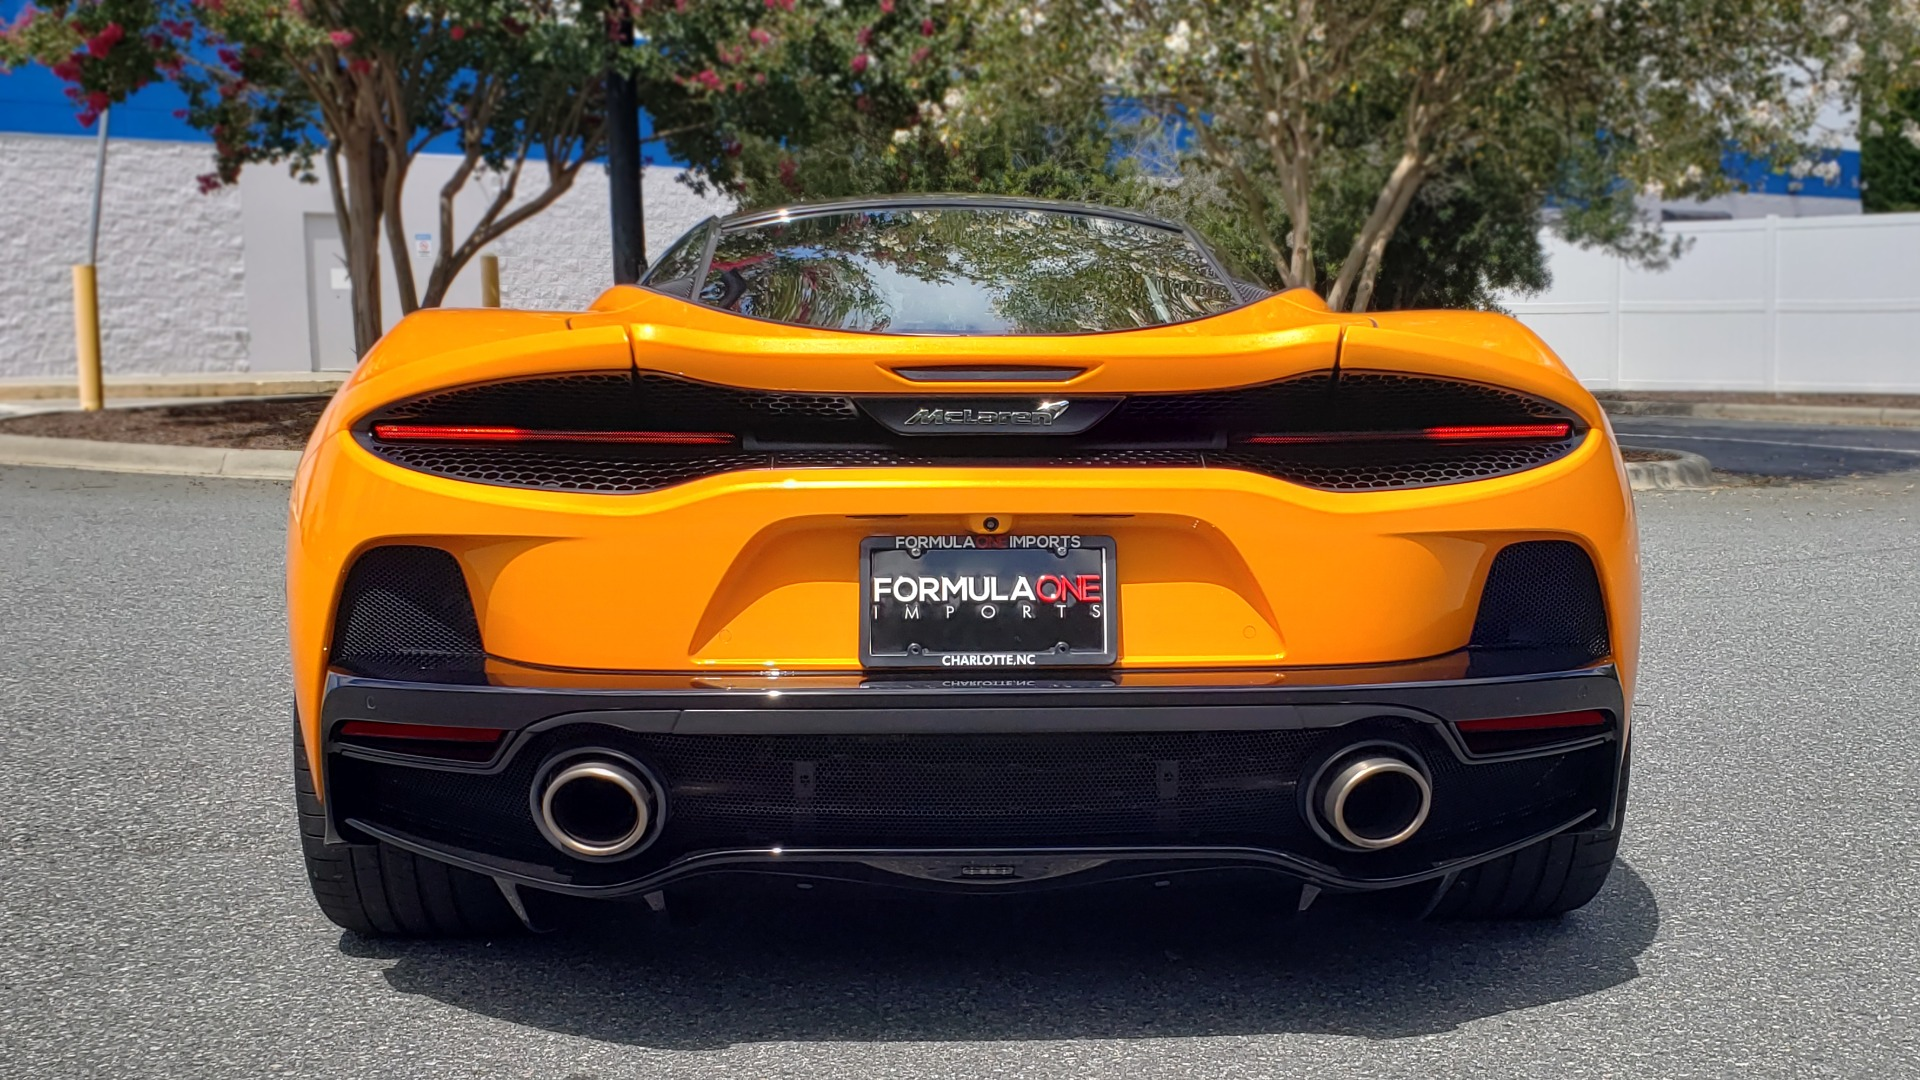 Used 2020 McLaren GT COUPE / 4.0L V8 - 612HP / RWD / NAV / REARVIEW / 20IN BLACK WHEELS for sale $244,000 at Formula Imports in Charlotte NC 28227 11